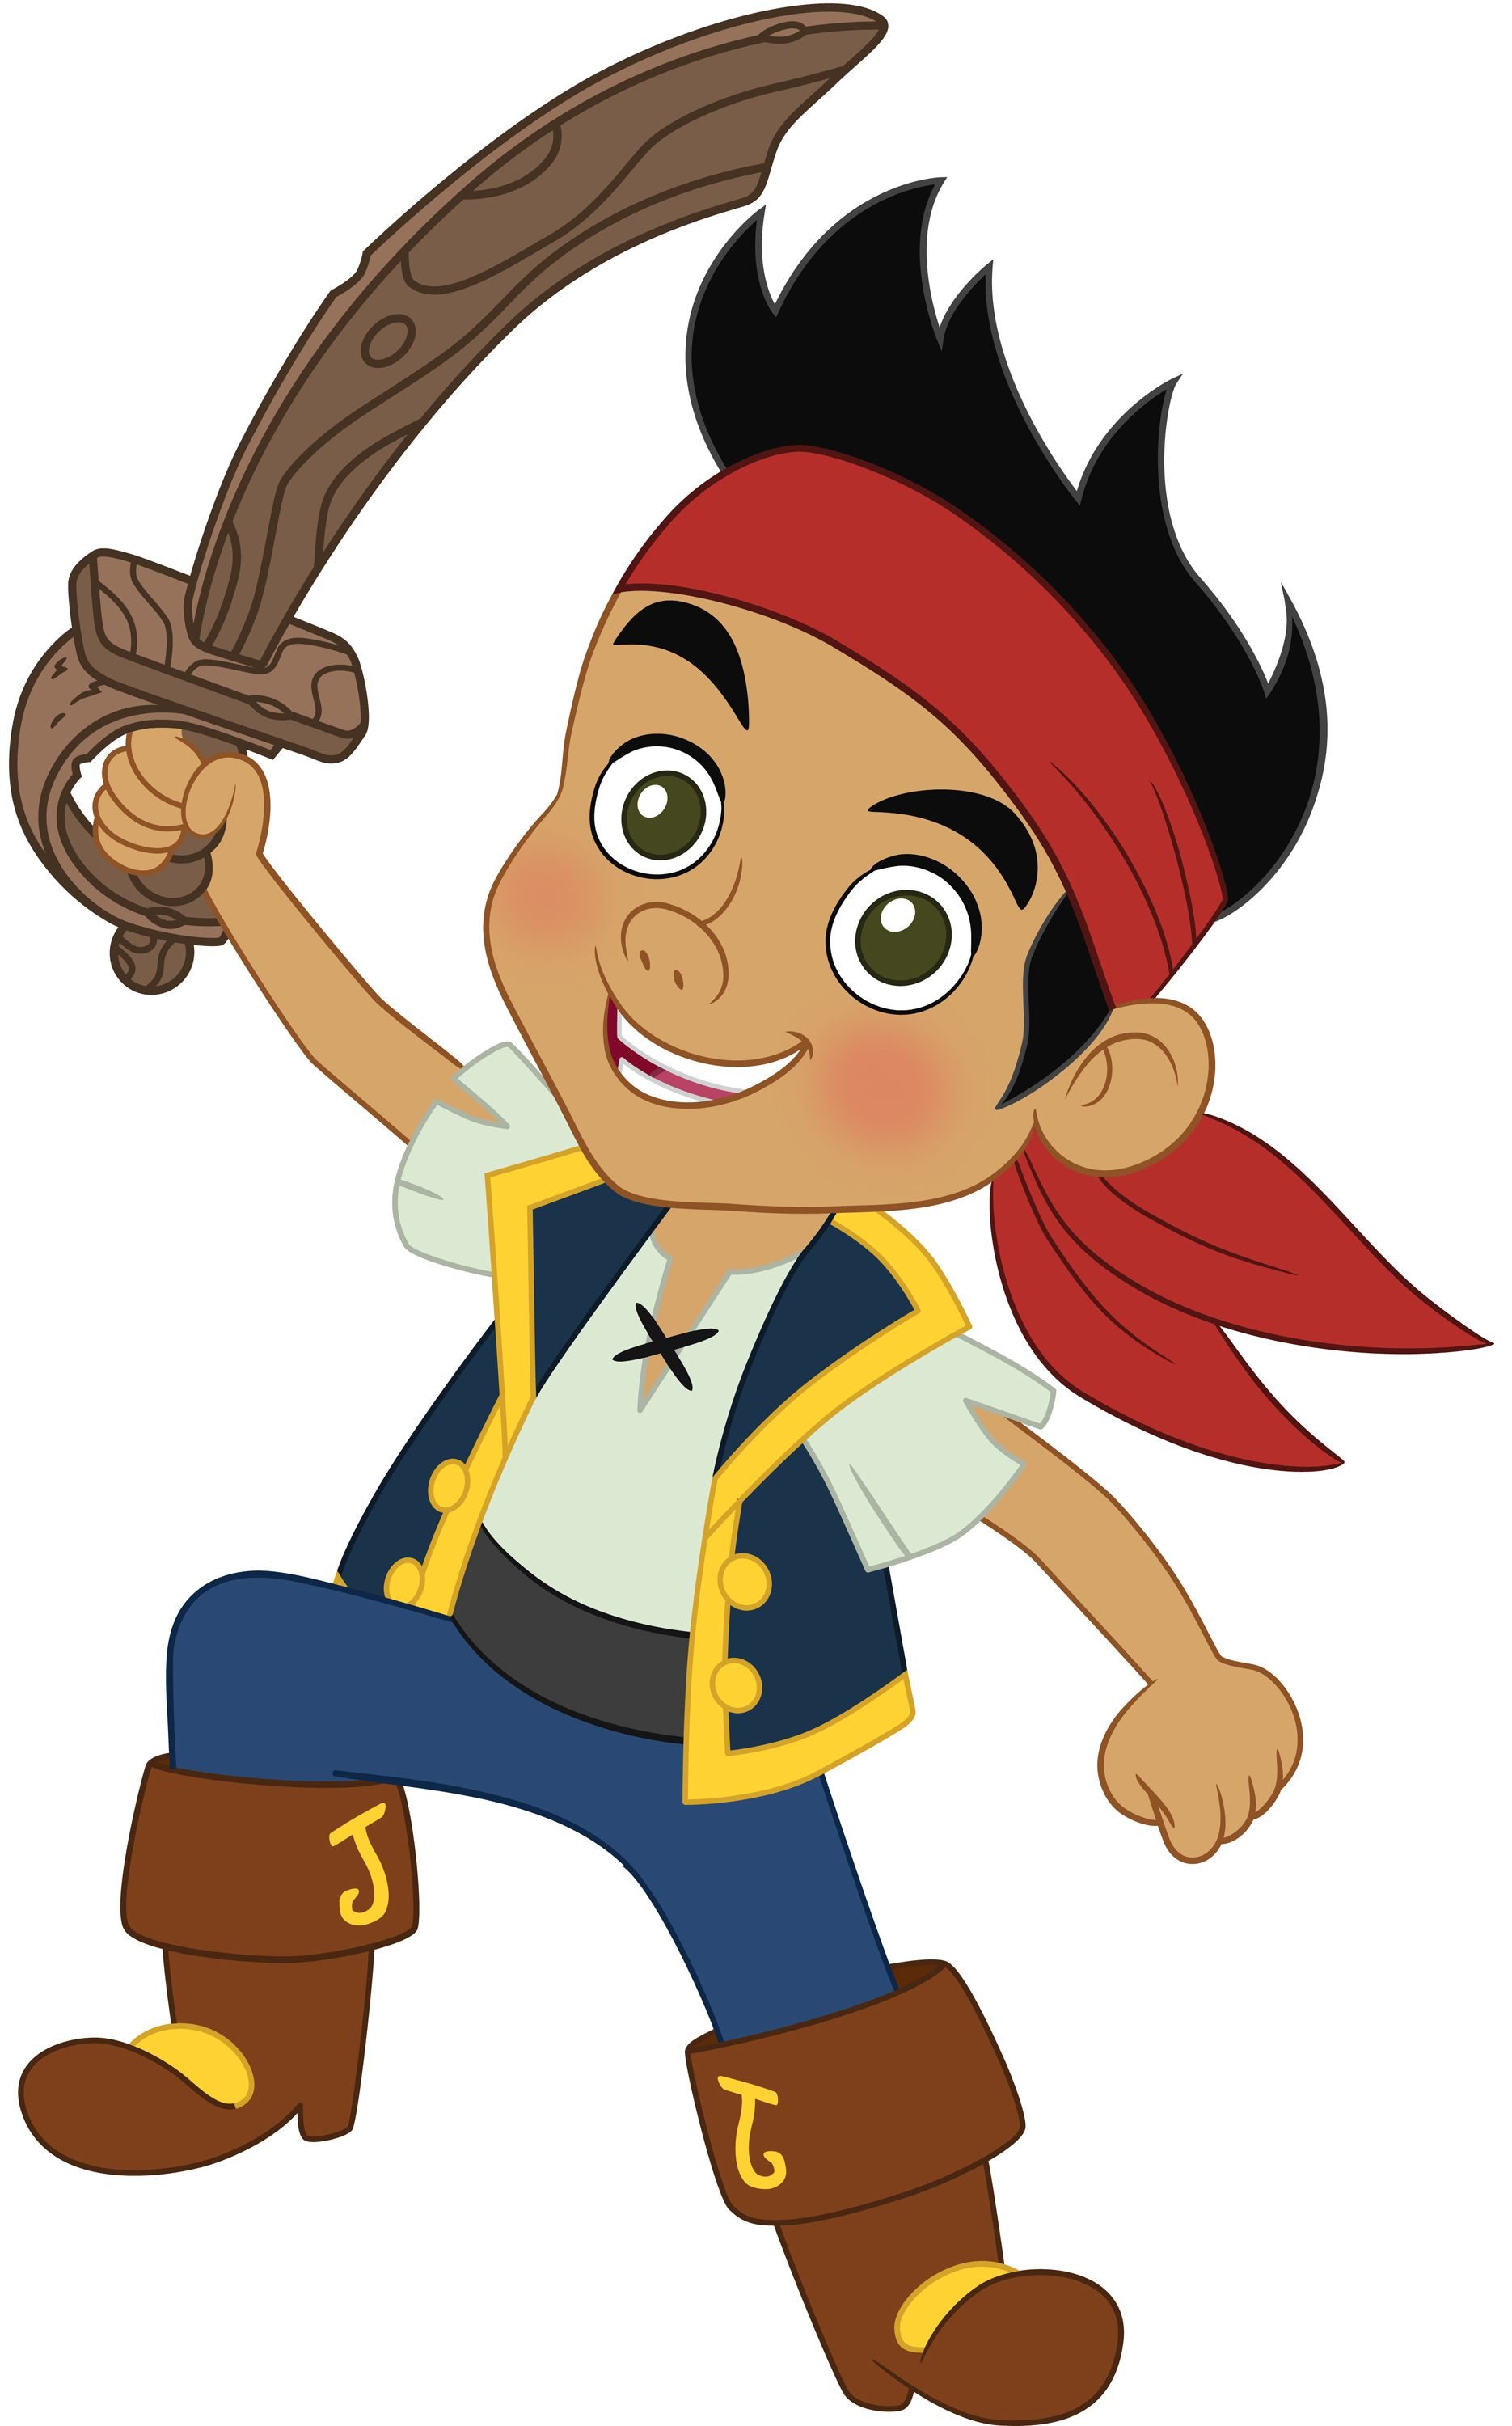 jake and the never land pirates clipart 1 jpg 1870 3000 pinterest rh pinterest com pirate clipart black and white pirate clipart images free